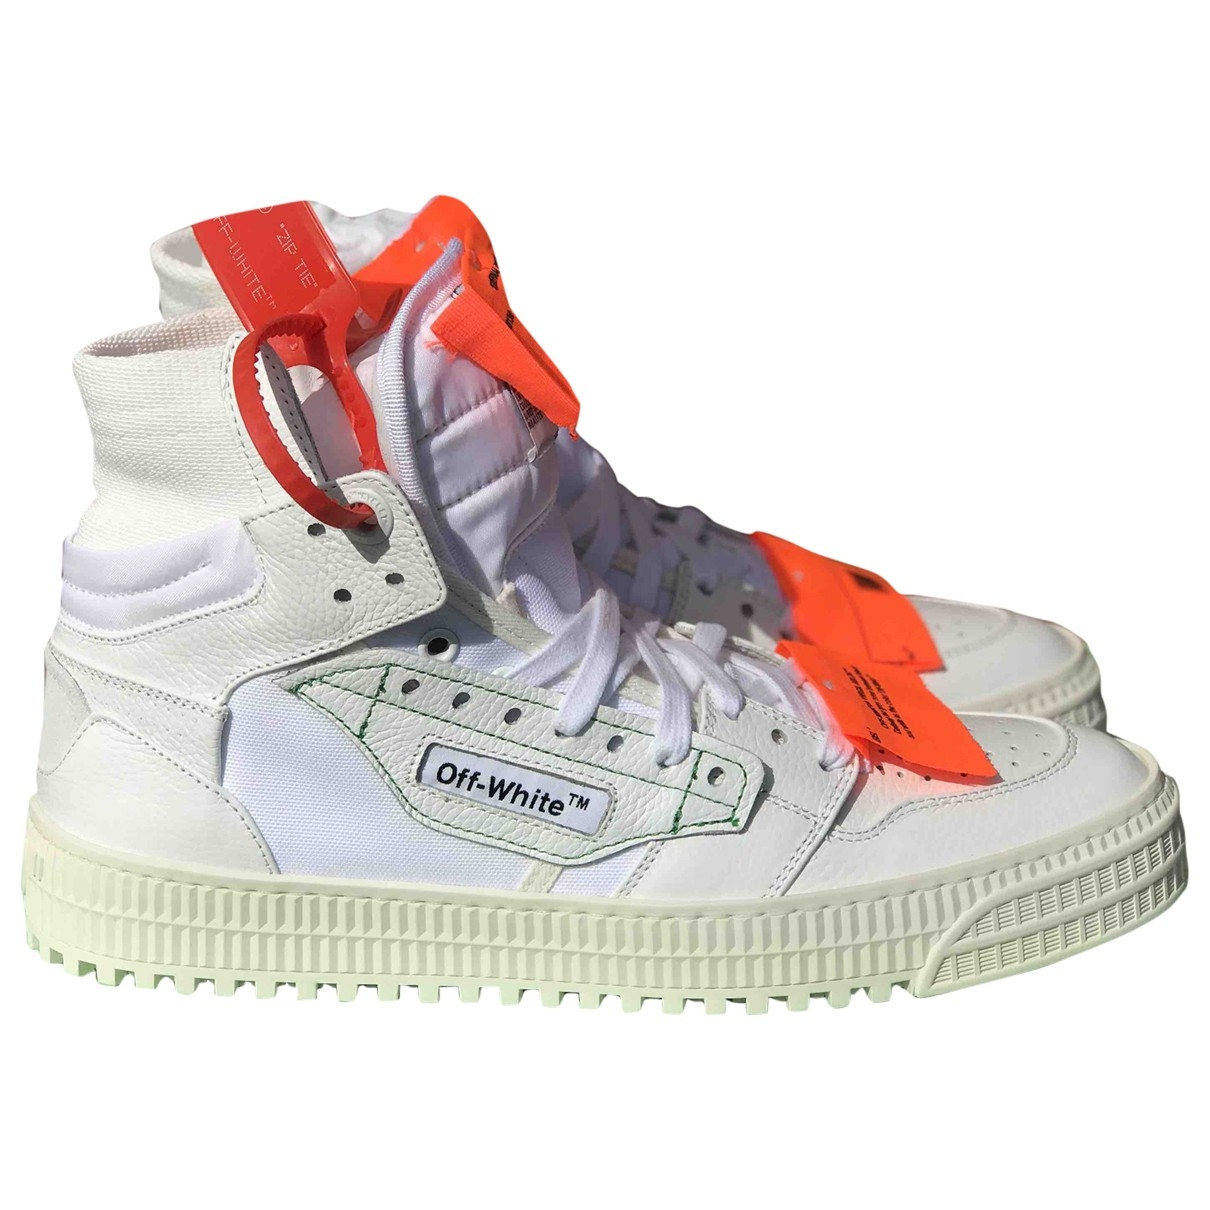 Off-white 3.0 Polo White Leather Trainers for Women 35 EU